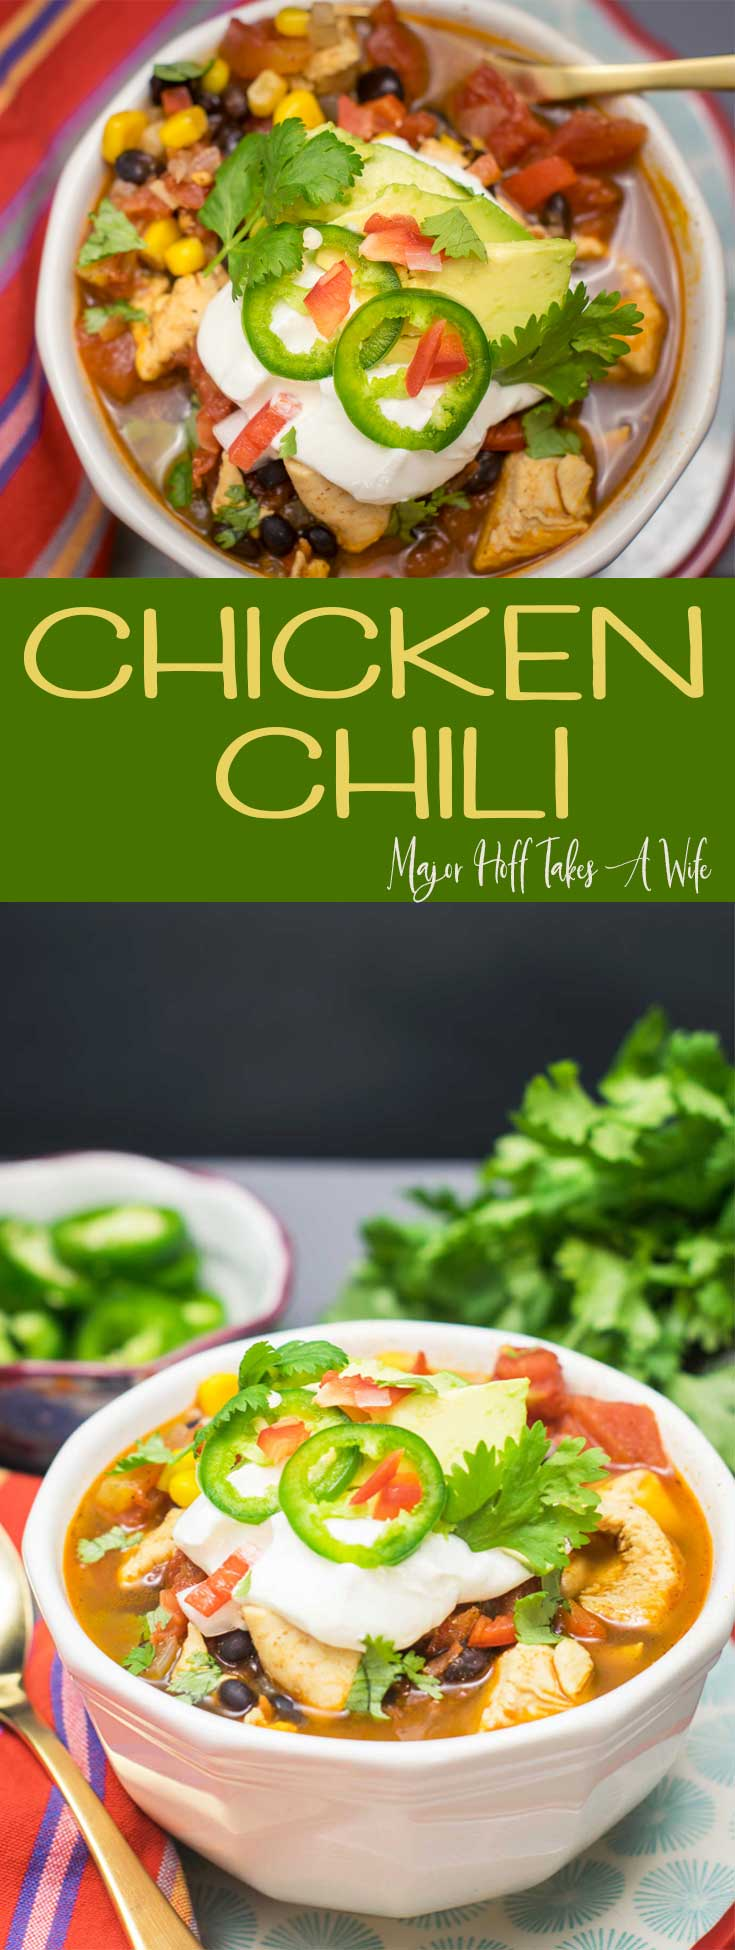 You will adore this chipotle chicken chili! A perfect recipe to warm you up! This chicken chili recipe features chipotle, black beans, corn and spices. #chili #ChickenChili #comfortfood #soup #chickenrecipes via @MrsMajorHoff via @mrsmajorhoff